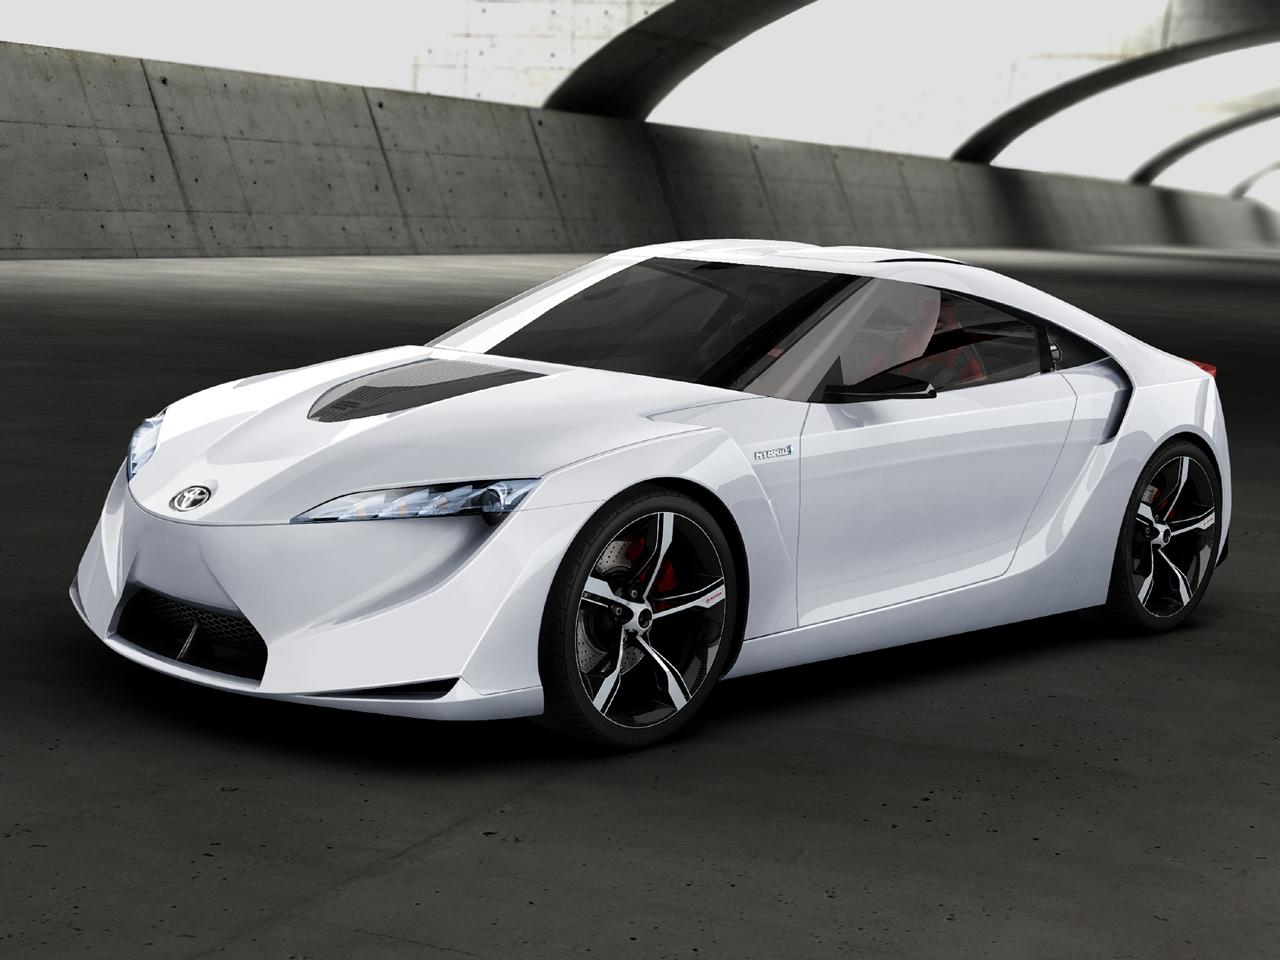 will toyota unveil a supra sports car concept at the detroit auto show